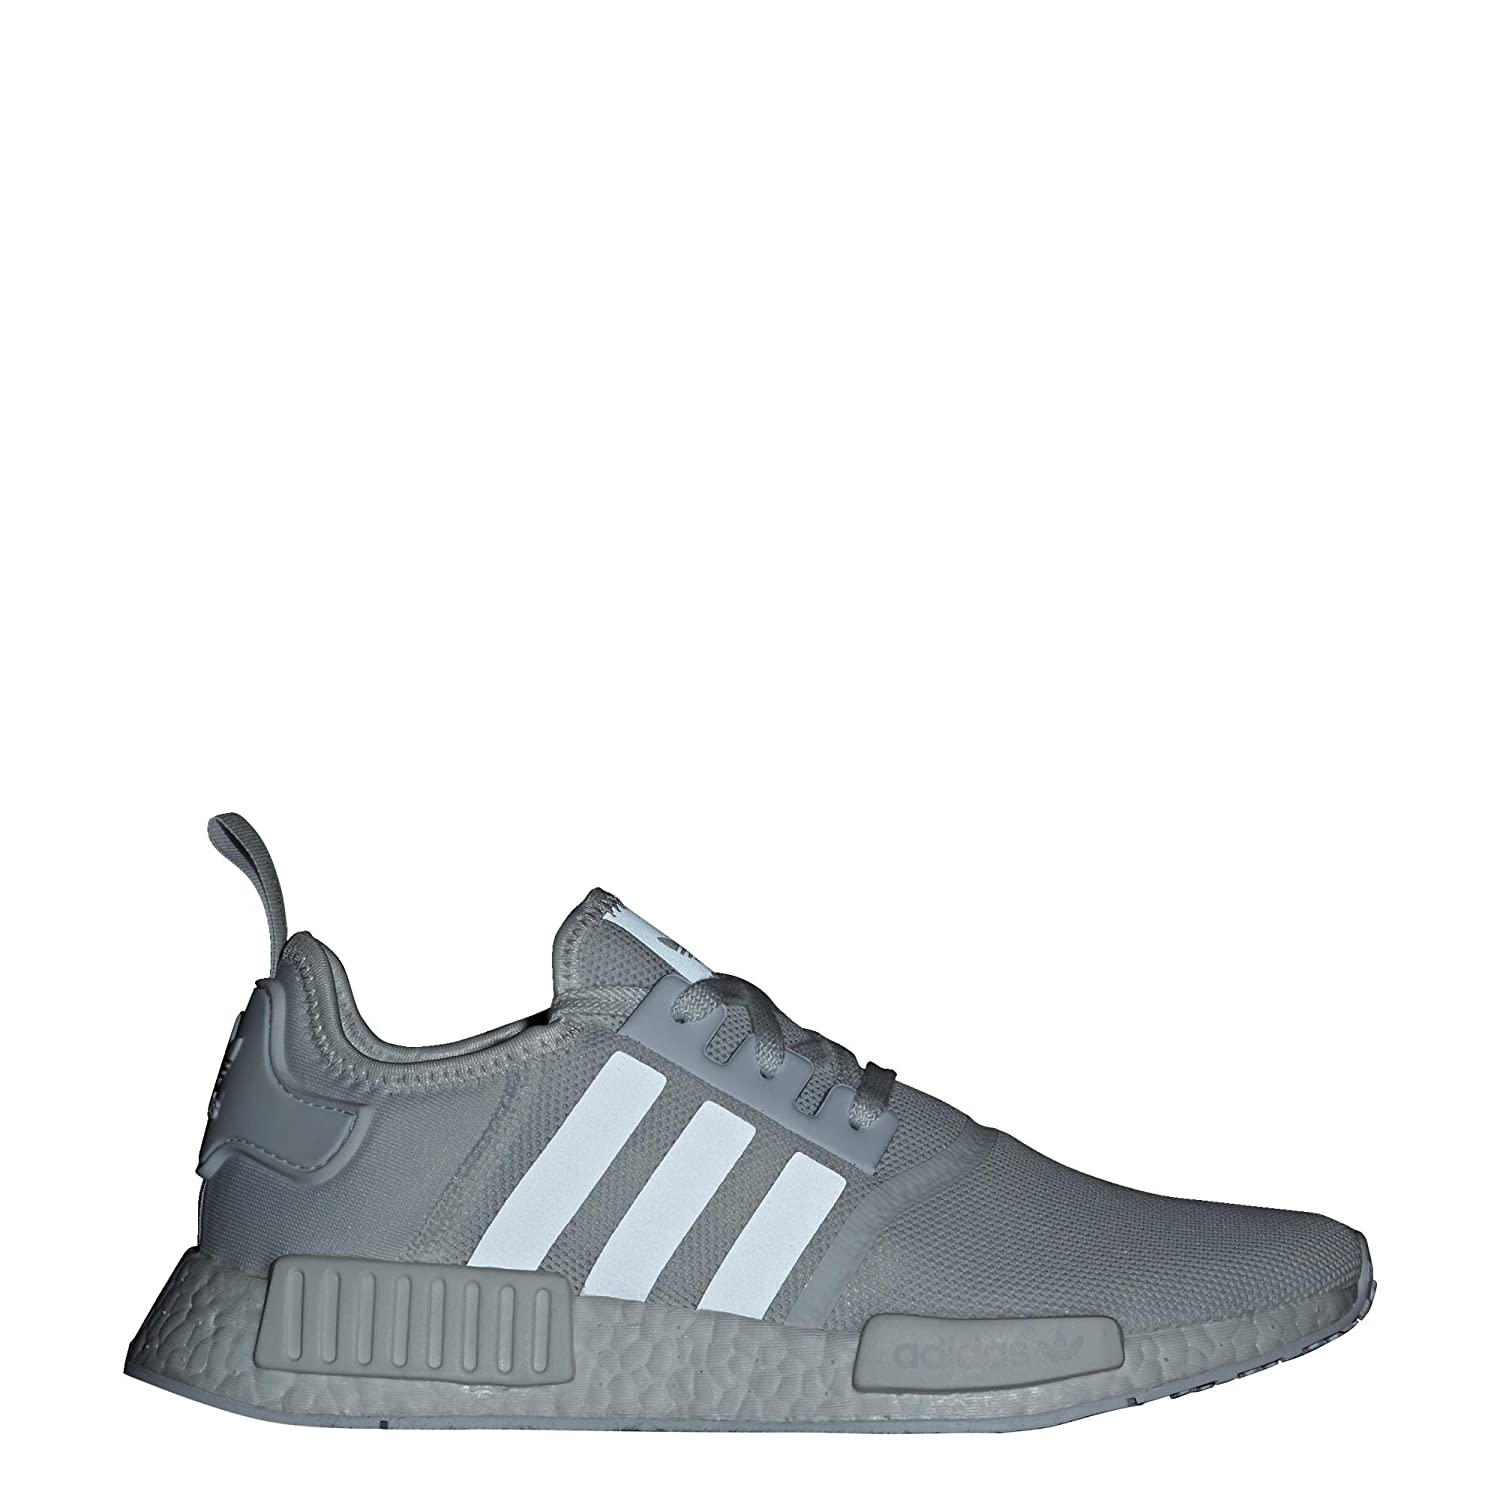 new arrival 9561c 1d4dd Amazon.com | adidas NMD R1 Triplle White 2017